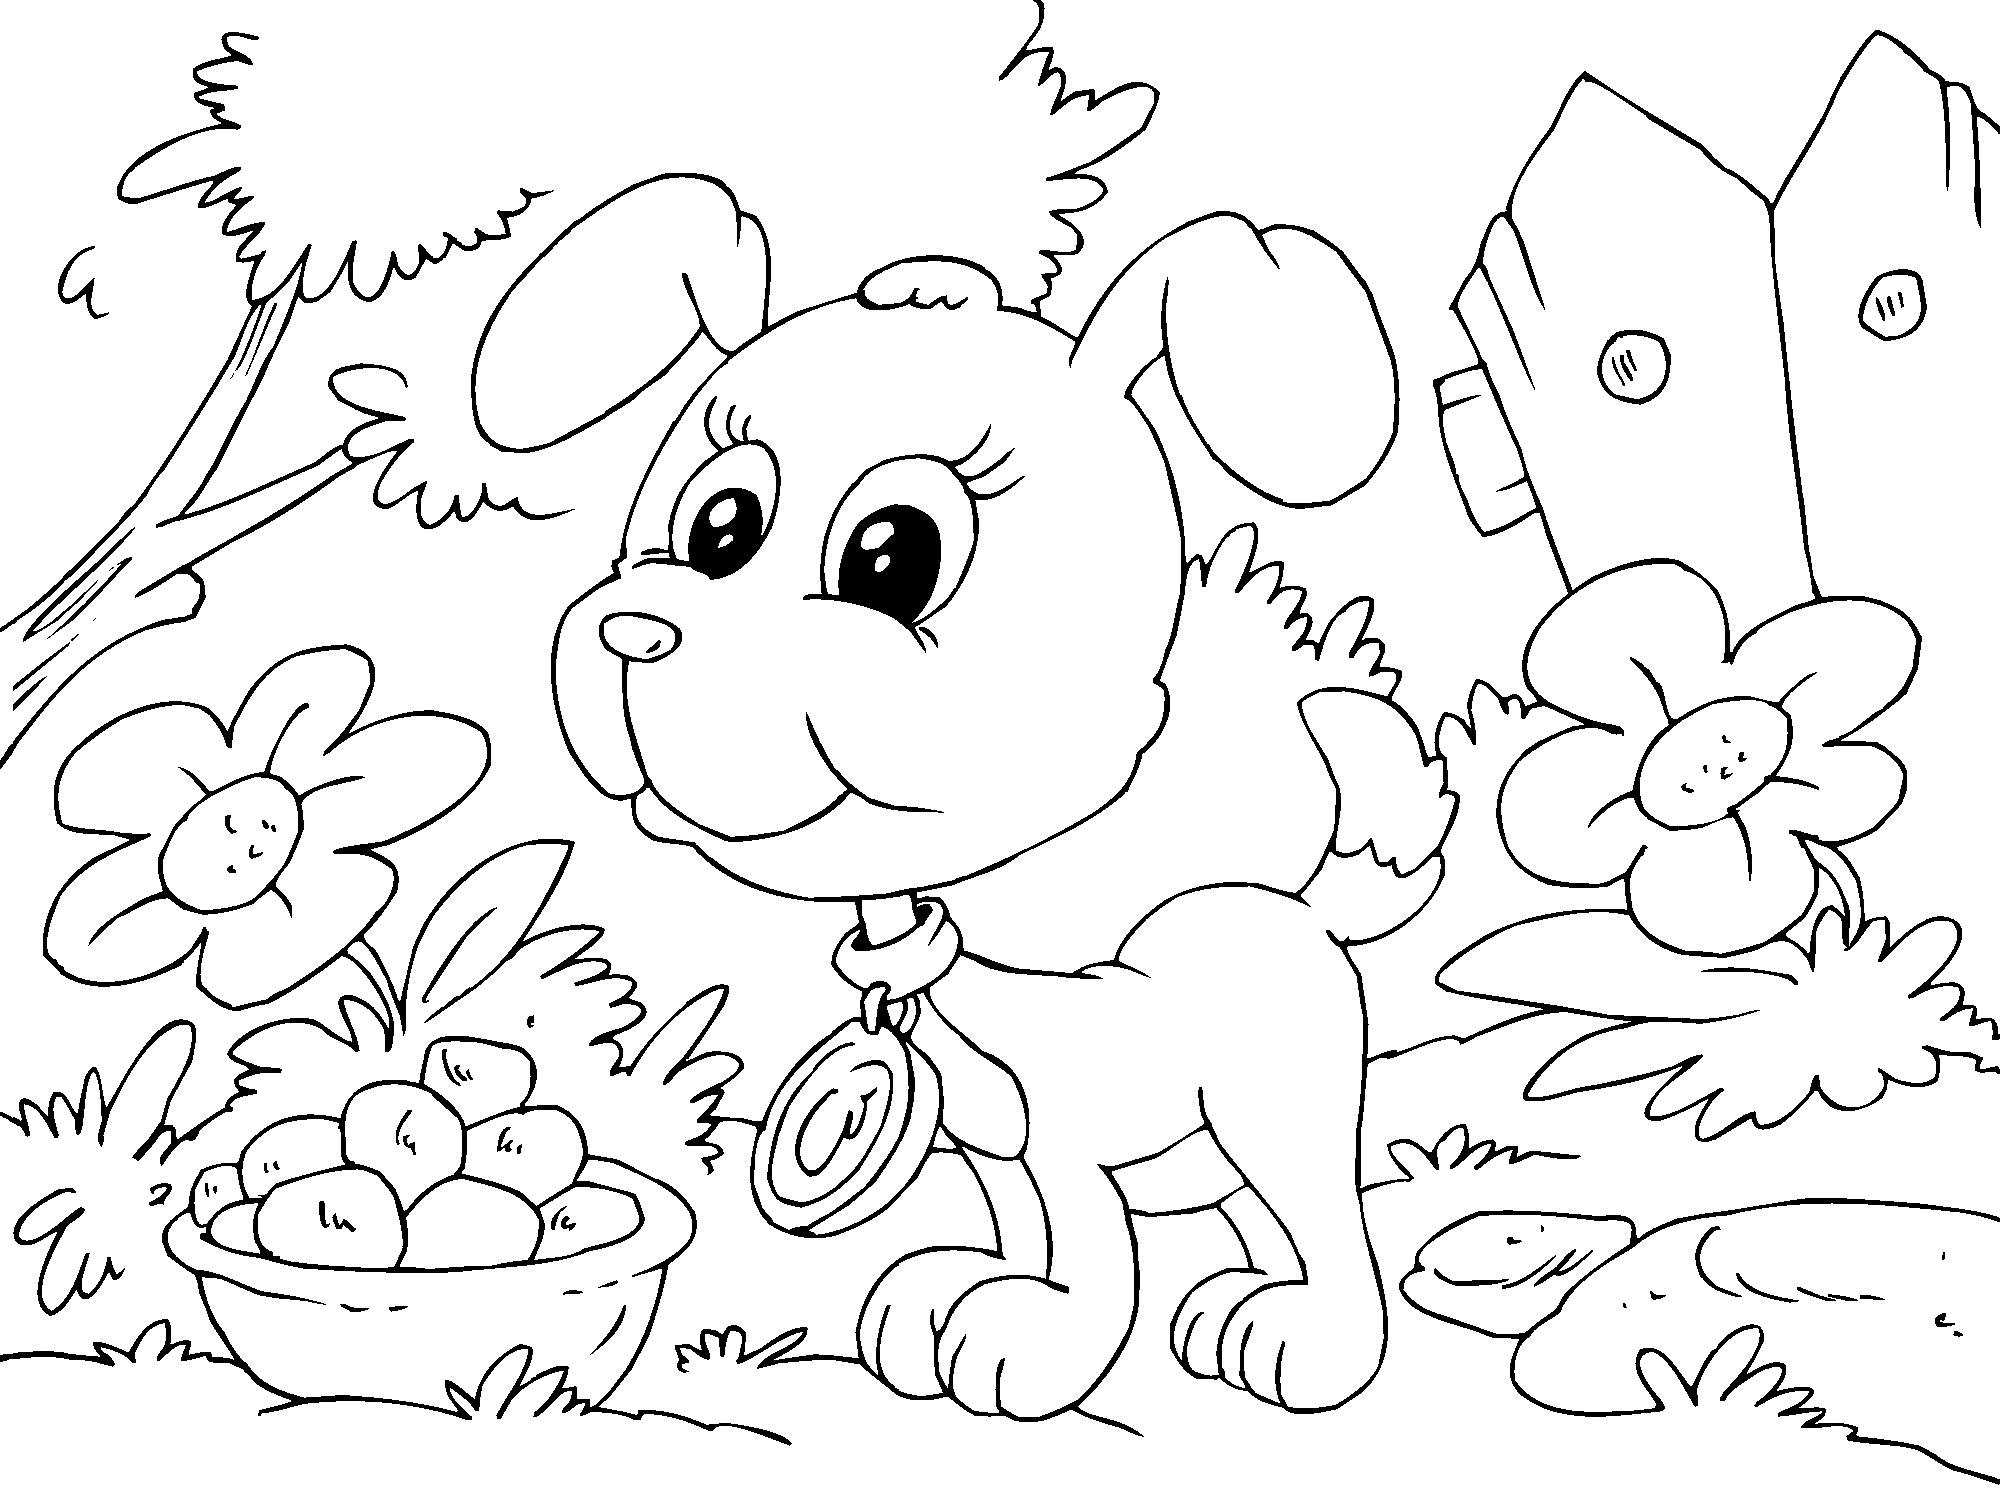 Coloriage chiot img 22682 - Chiot coloriage ...